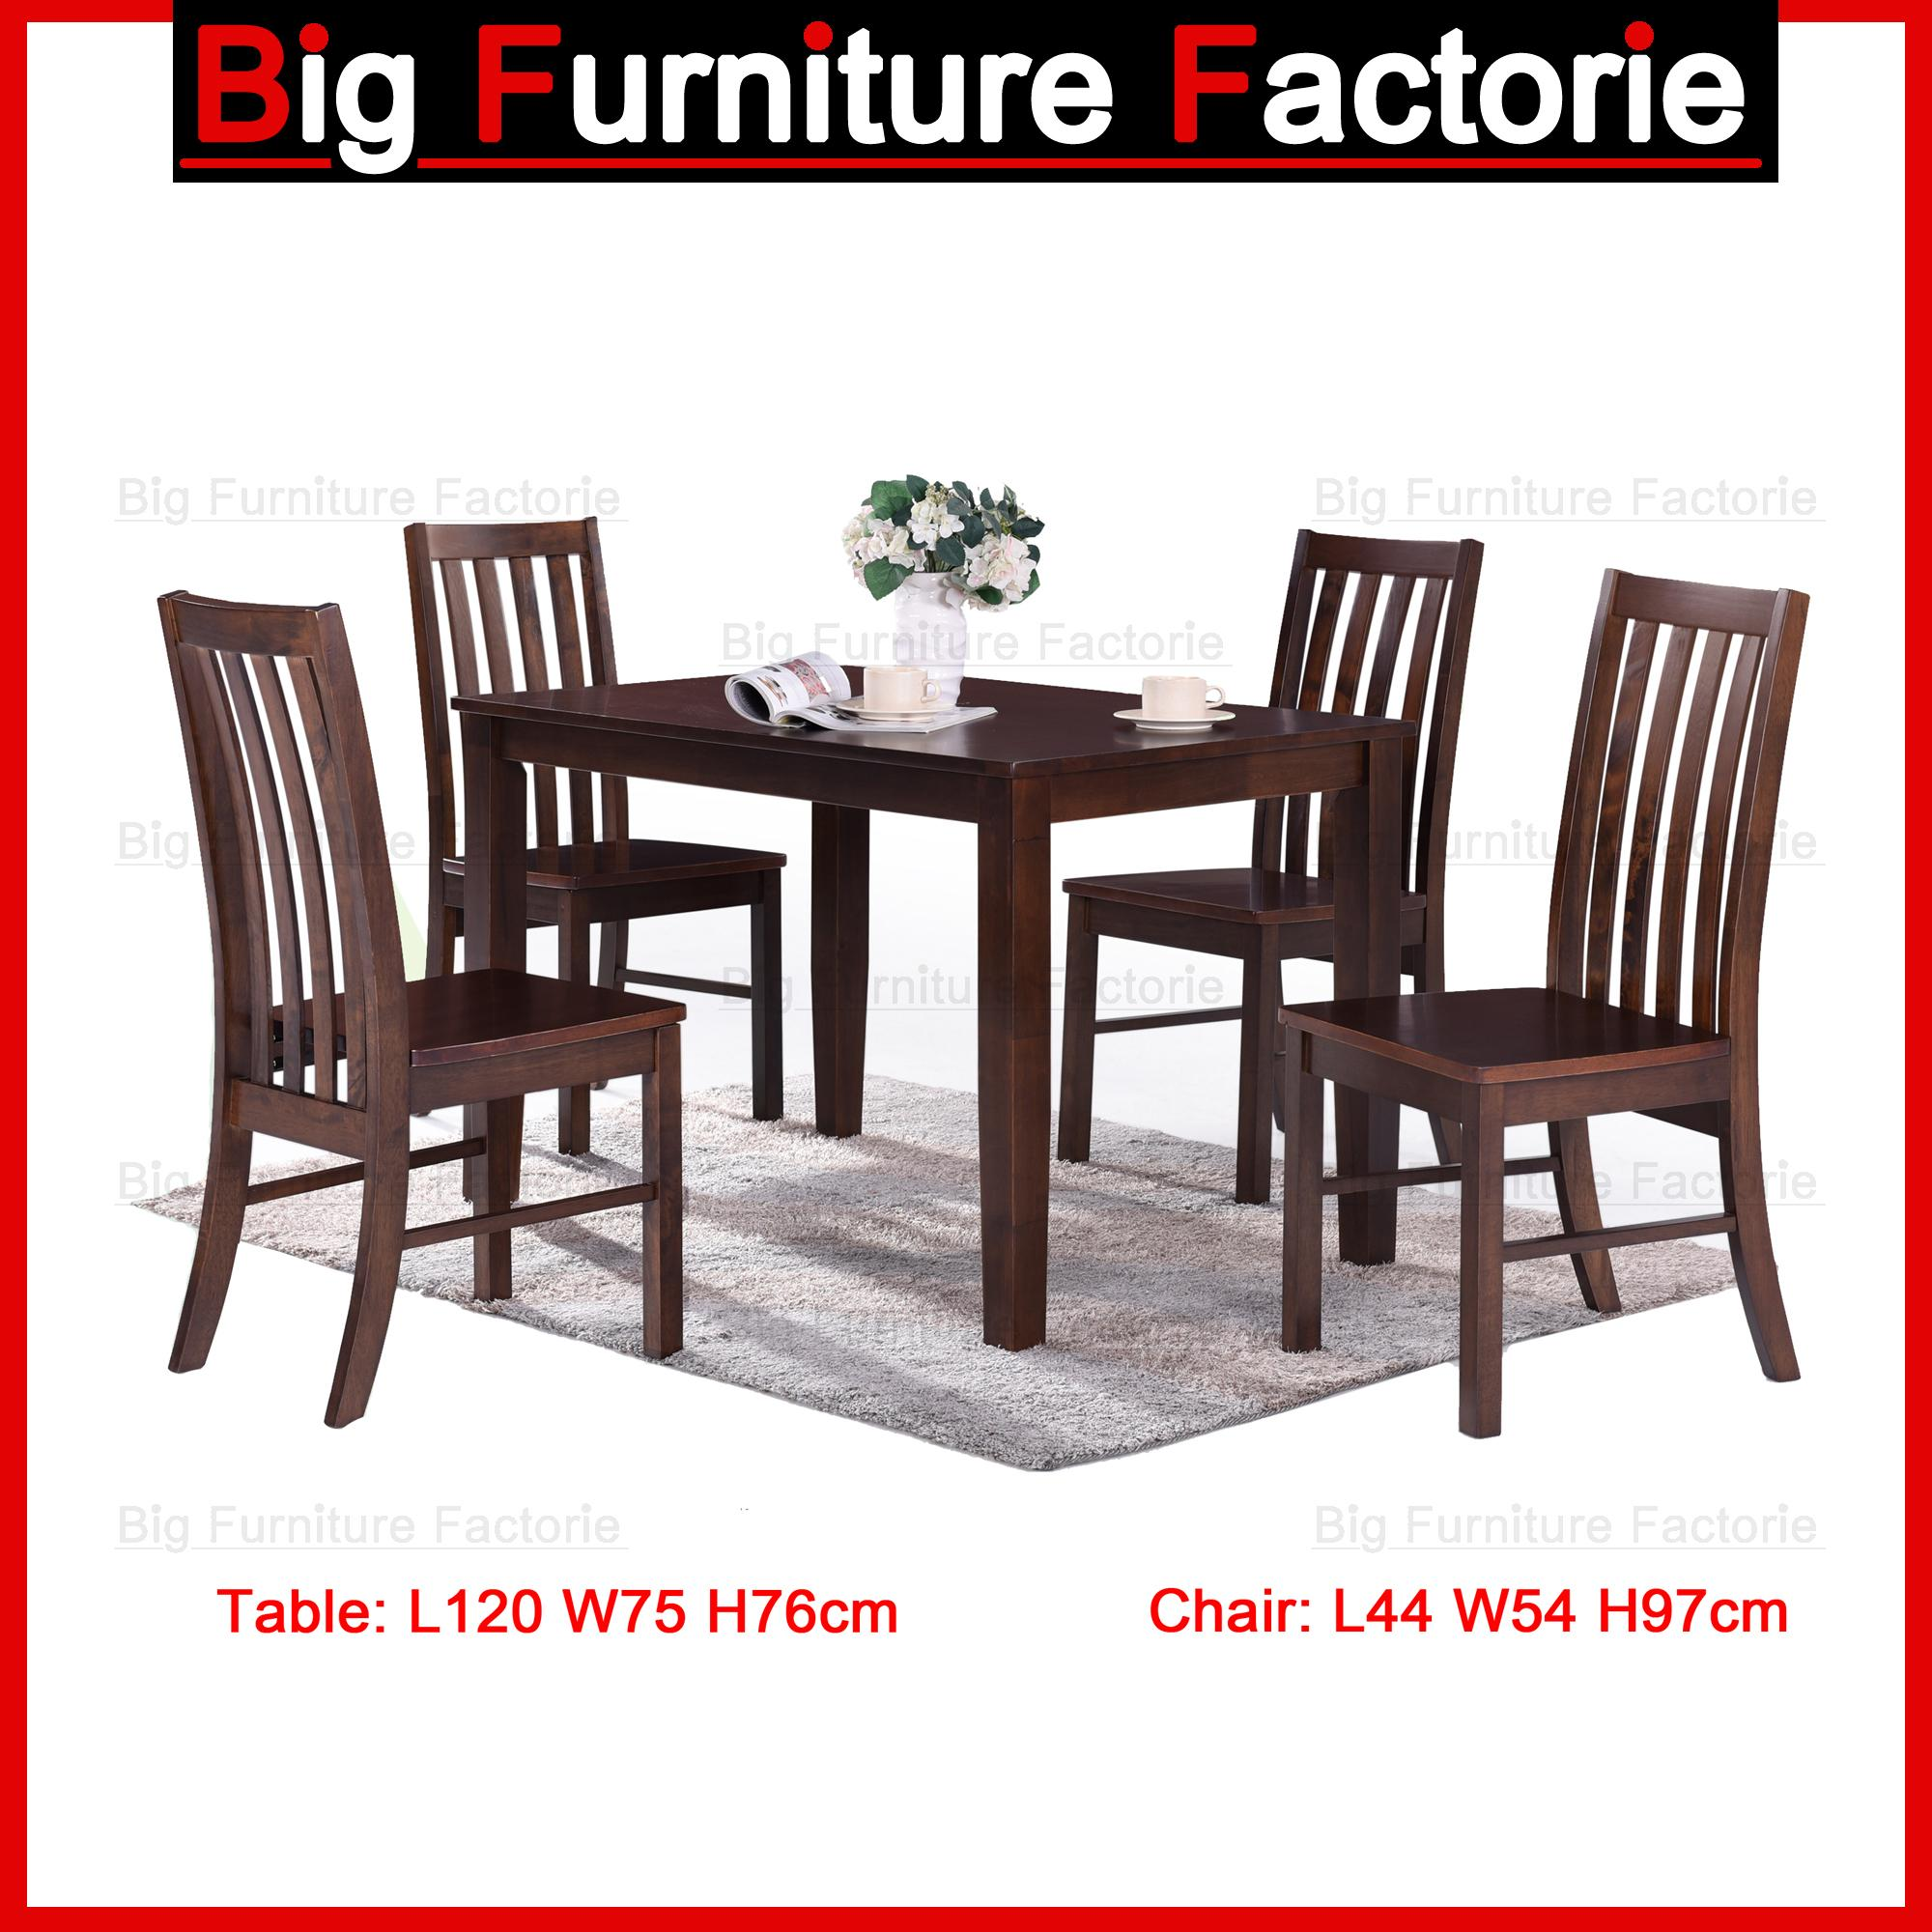 Solid Wooden Dining Set / Table and Chairs